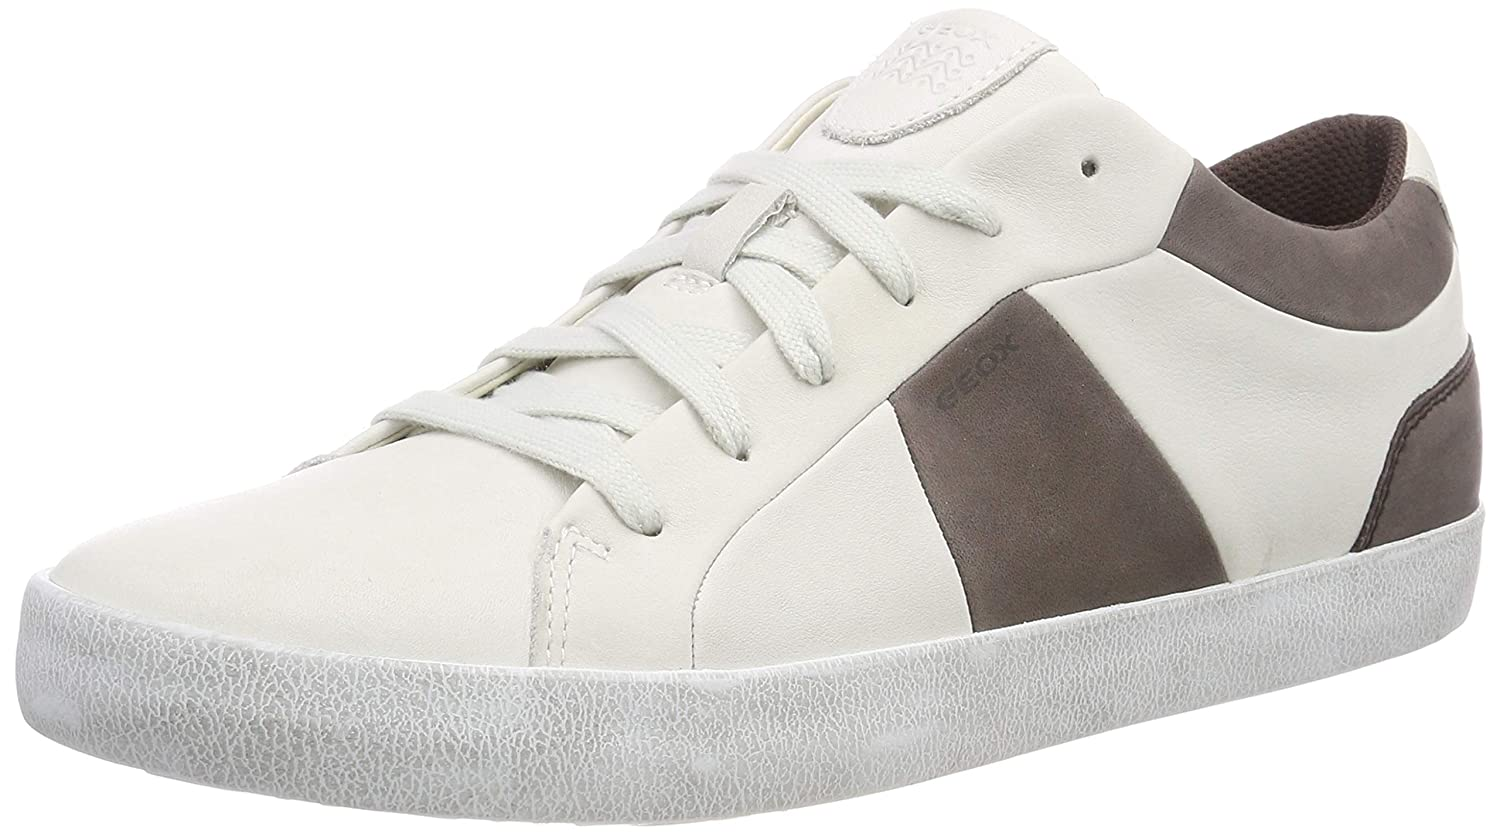 Geox Coffee B Basses Blanc 41 Homme Smart White U Sneakers C0231 Eu PSBwwq